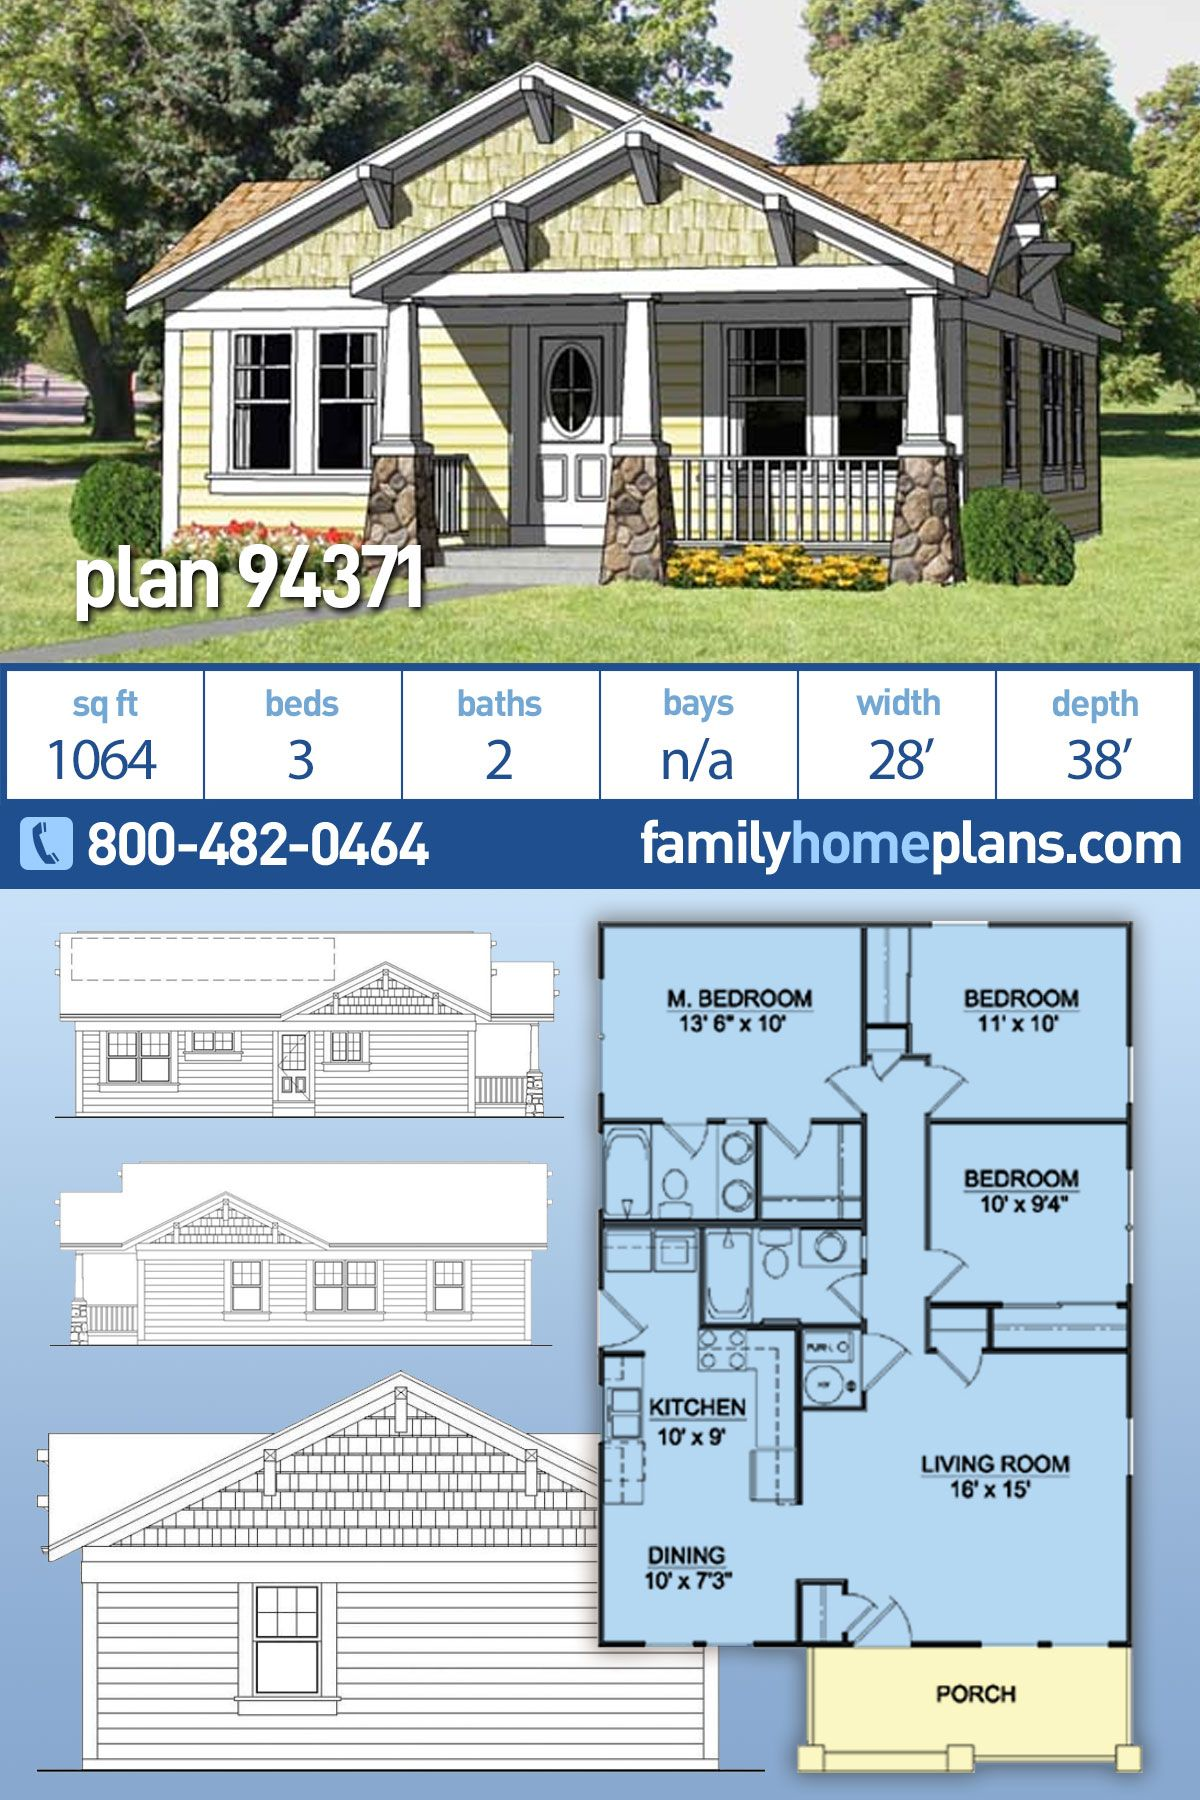 Craftsman Style House Plan 94371 With 3 Bed 2 Bath Cottage Plan Craftsman Style House Plans Small Craftsman House Plans